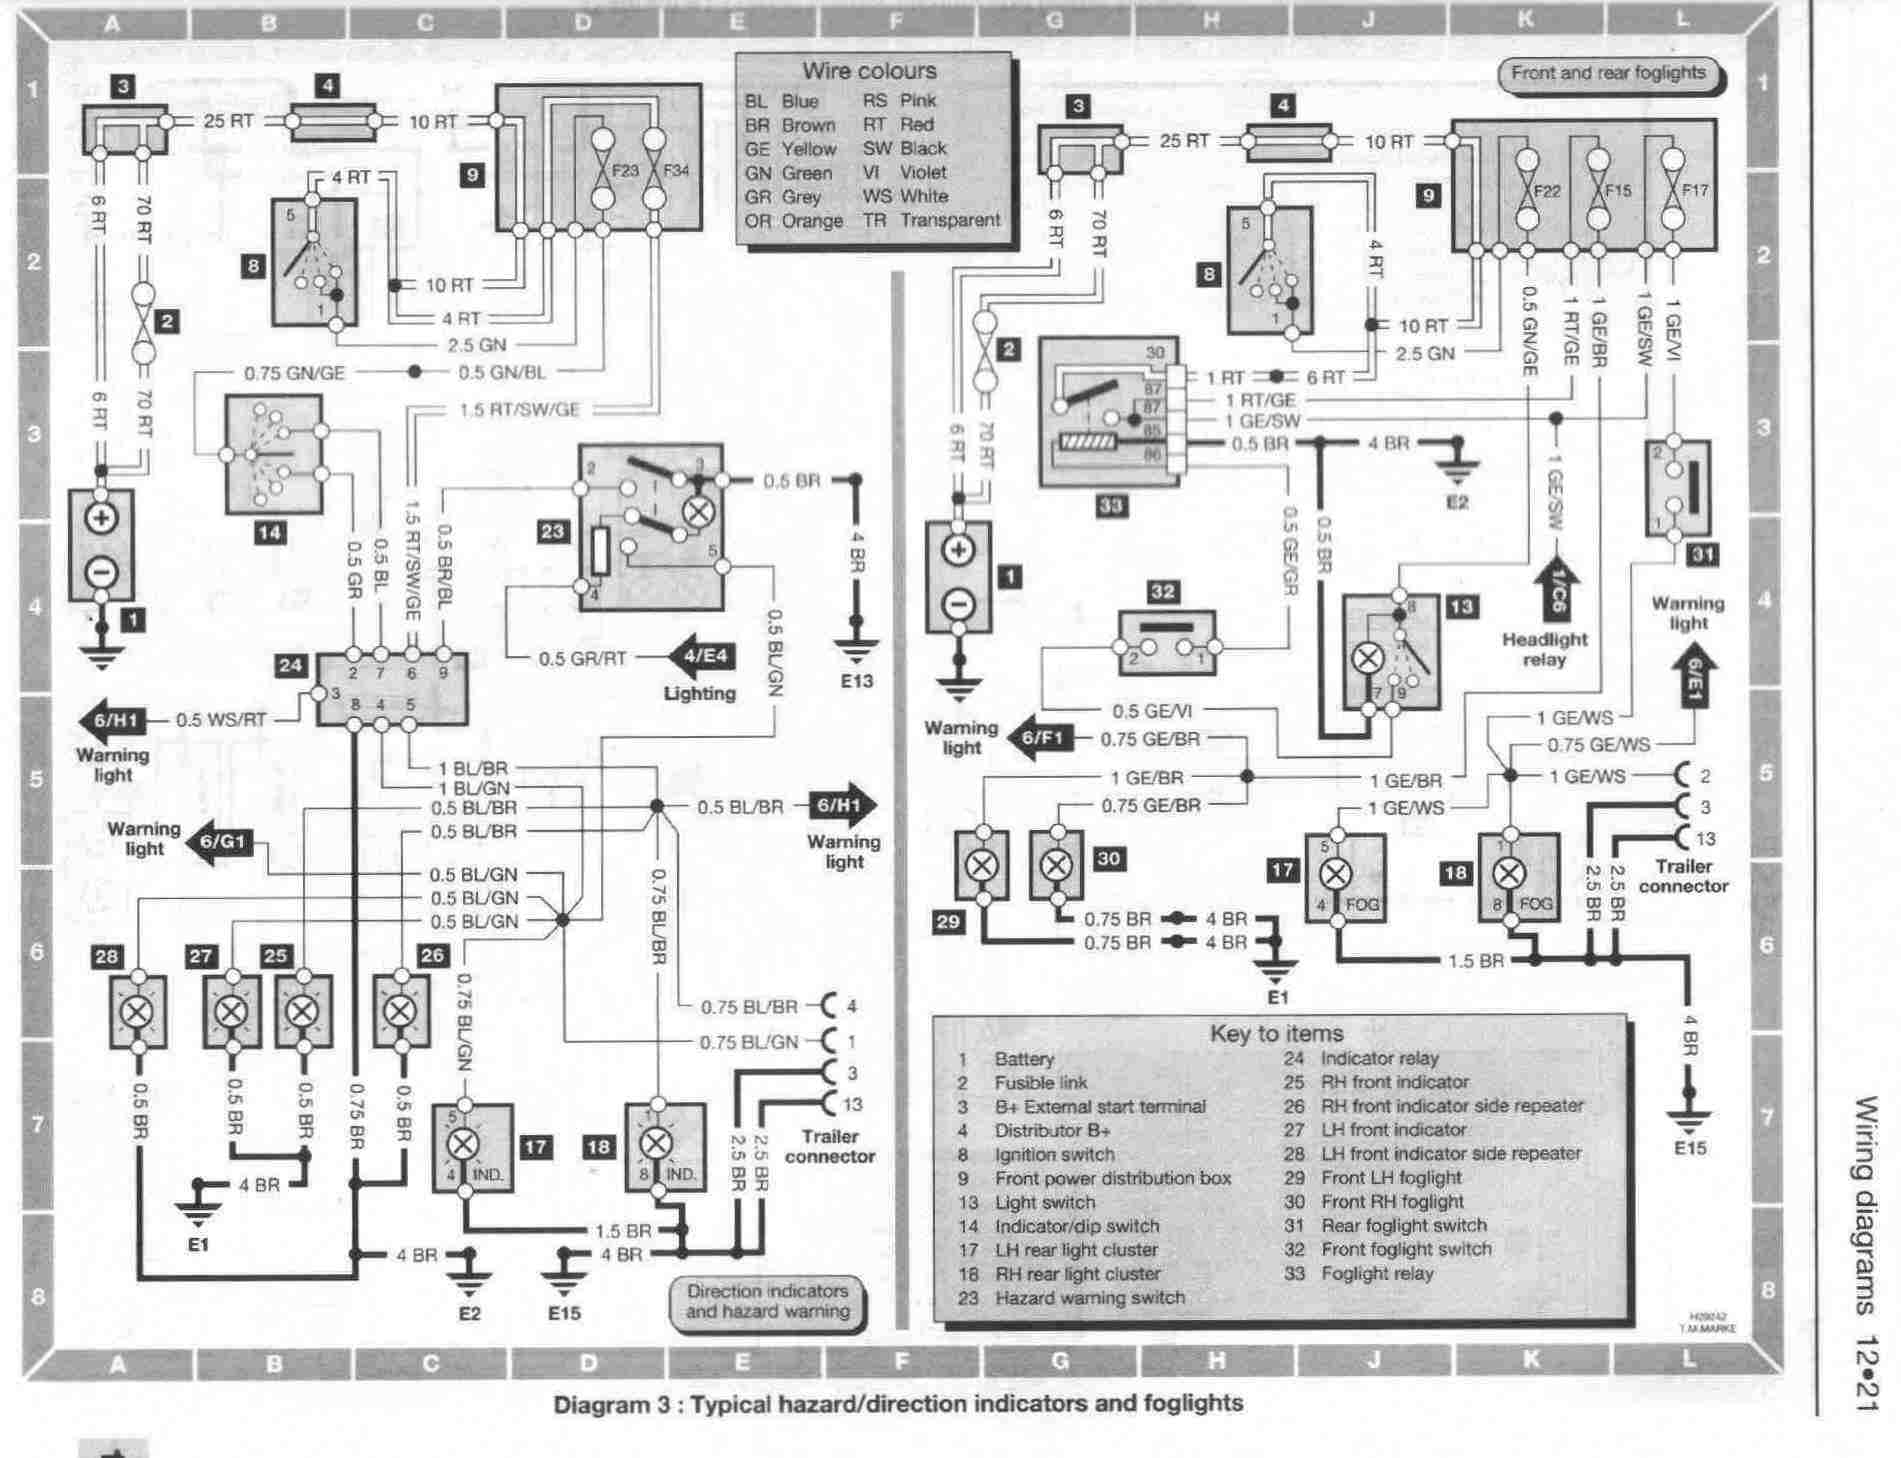 foglamp wiring wiring diagram for international truck the wiring diagram 4900 International Truck Wiring Diagram for Wipers at gsmx.co